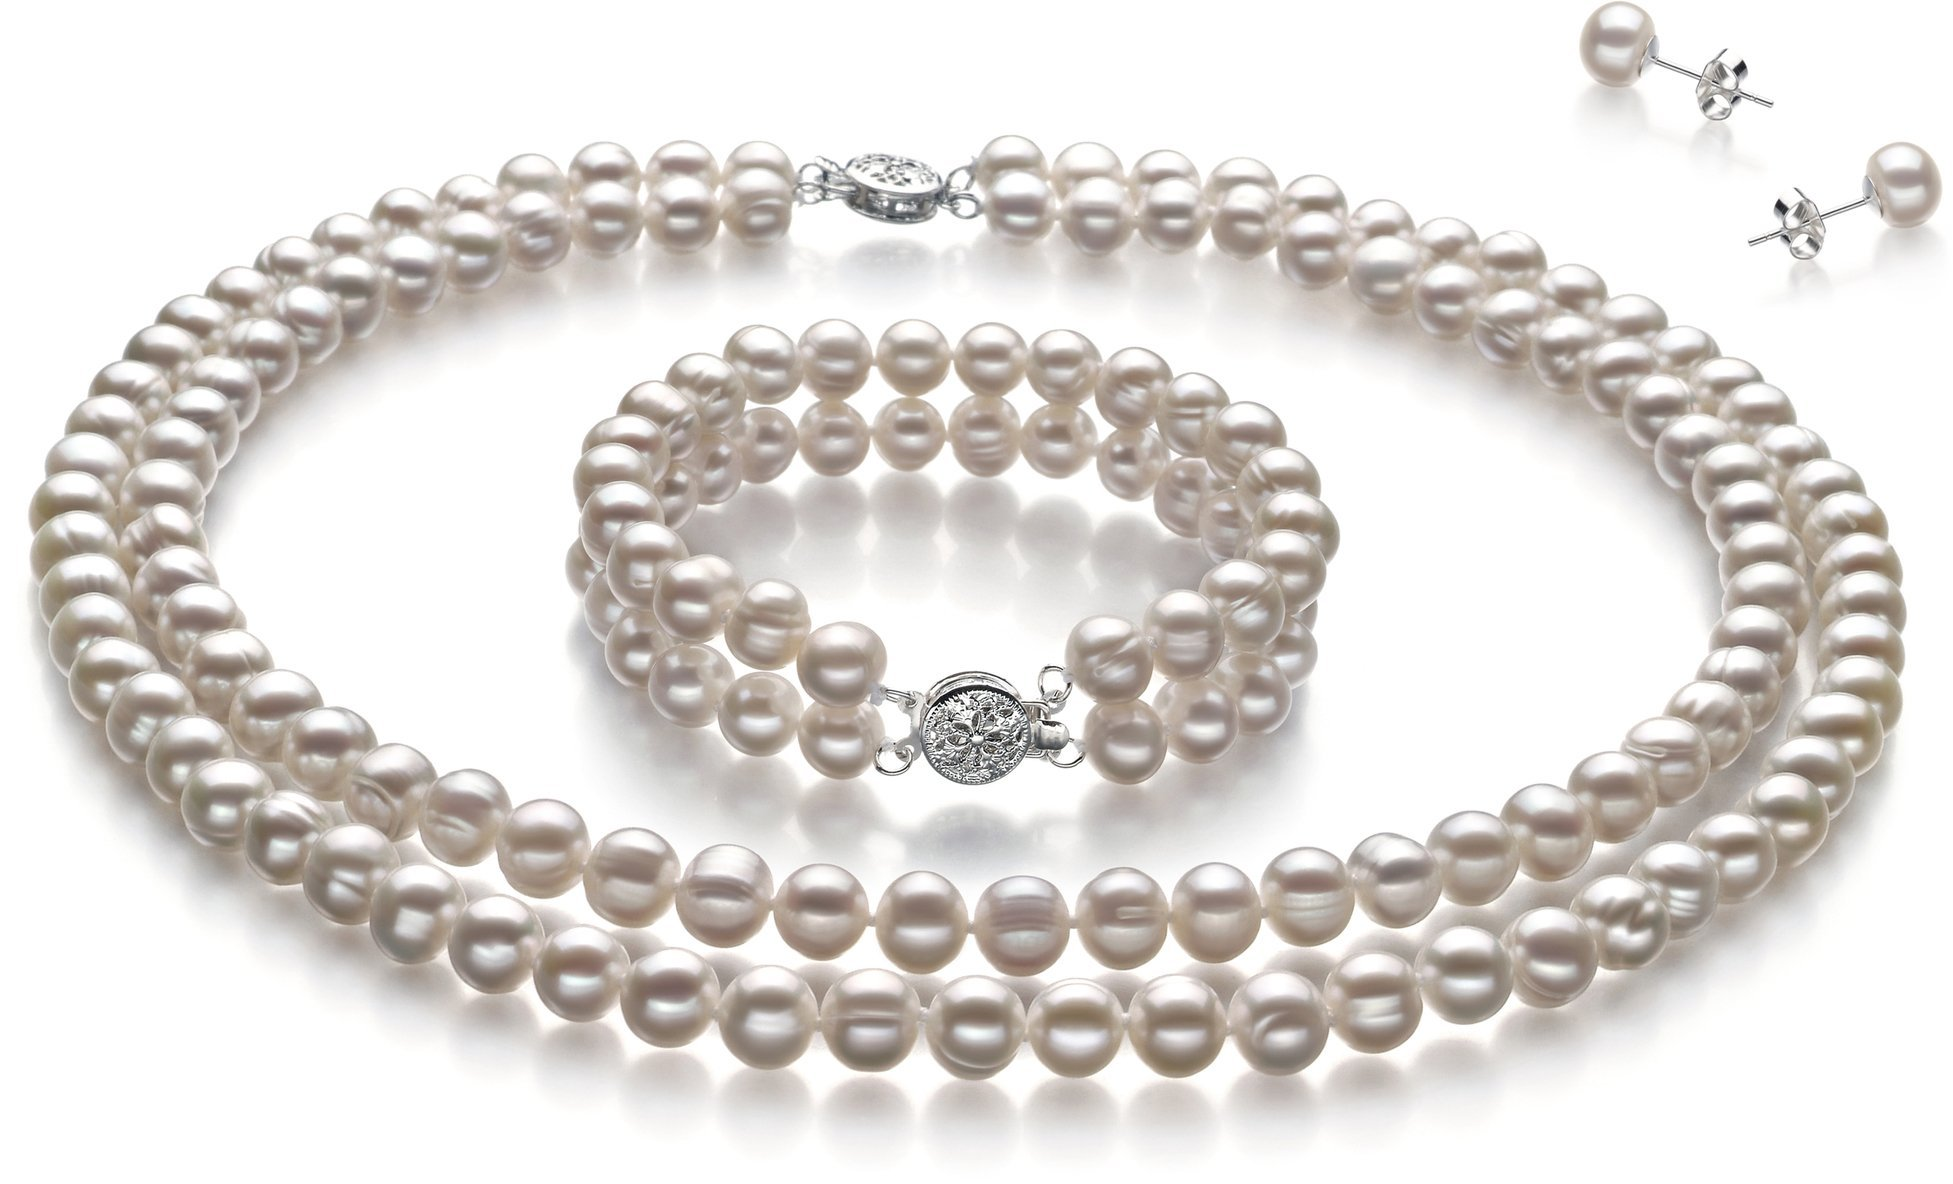 PearlsOnly Juliane White 6-7mm Double Strand A Quality Freshwater Cultured Pearl Set-23 in Matinee length